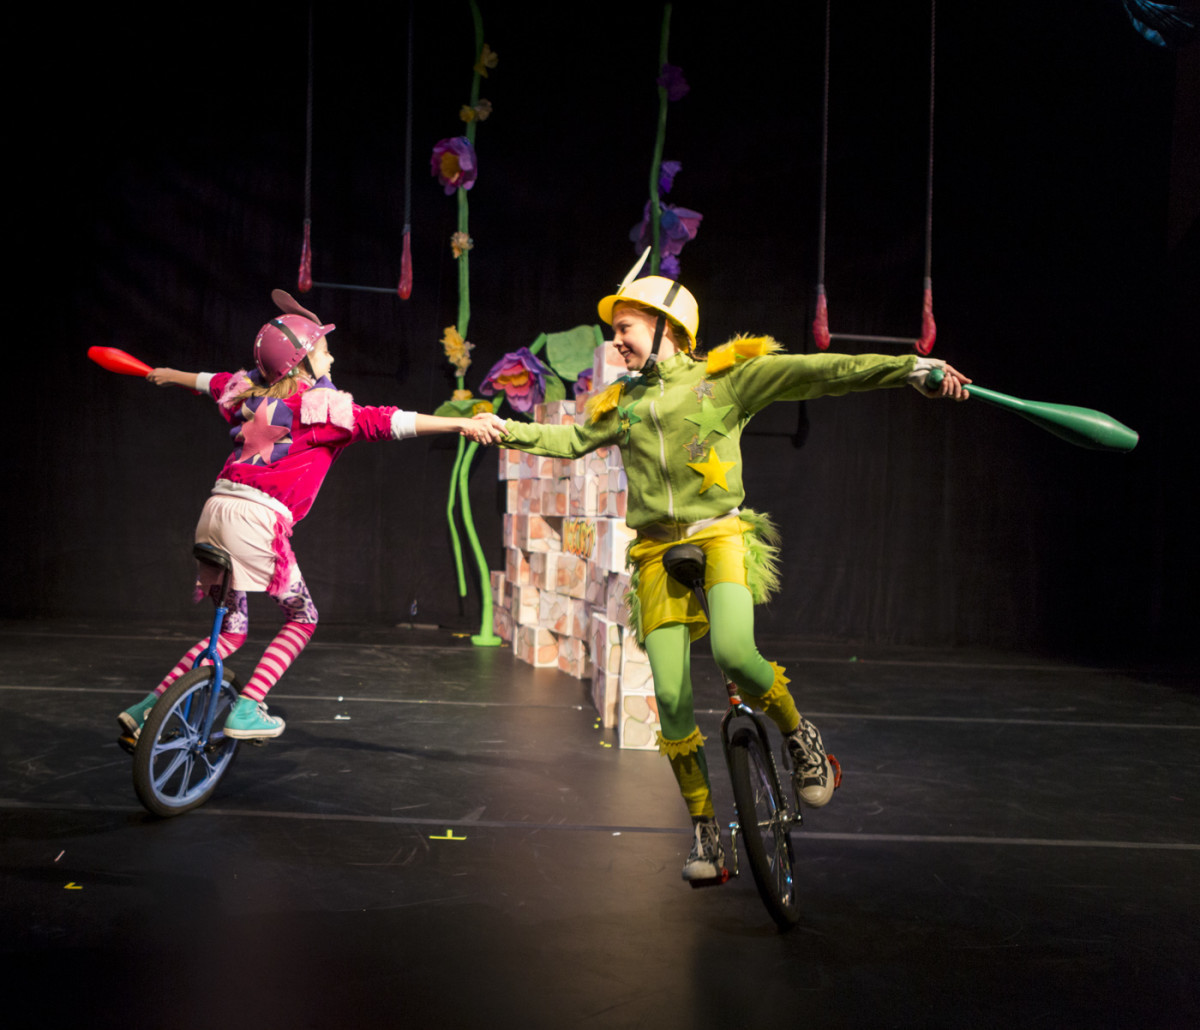 Youth unicyclists as border patrol in CircAspire.